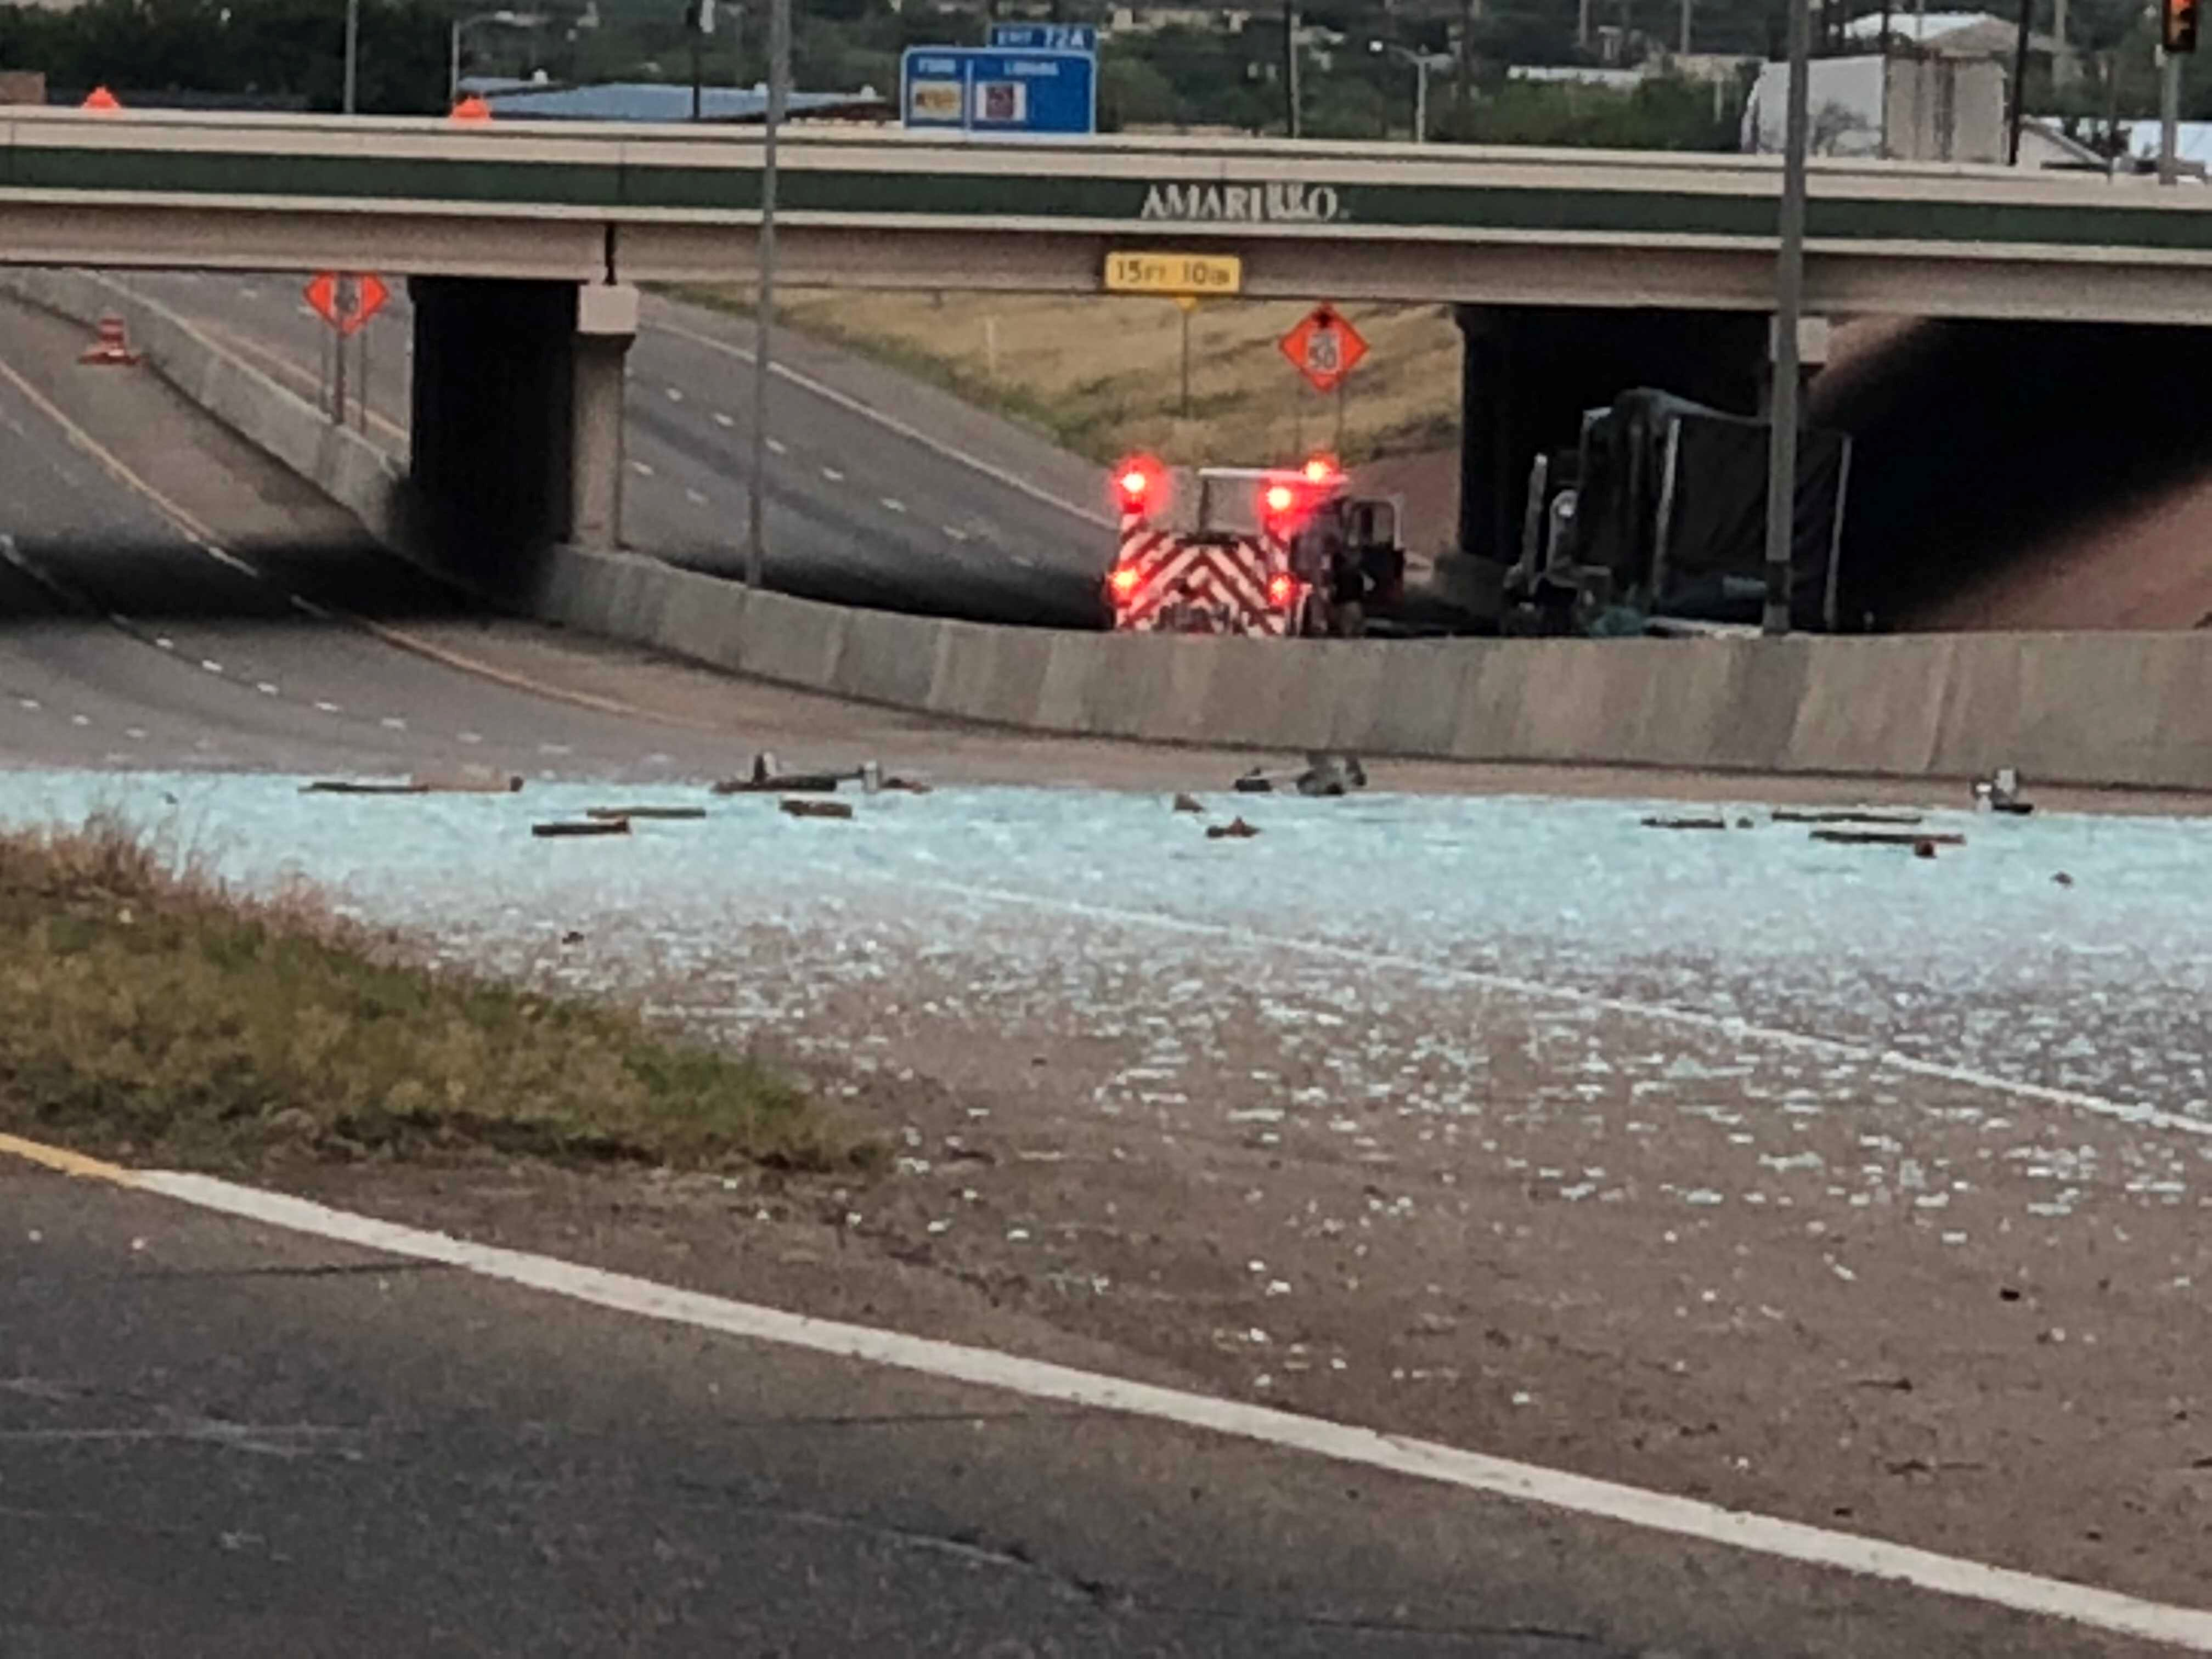 Traffic is stalled on Interstate 40 near Grand Street as crews work an accident that left glass covering several lanes of the highway. (ABC 7 Amarillo - Nataziah Gipson)